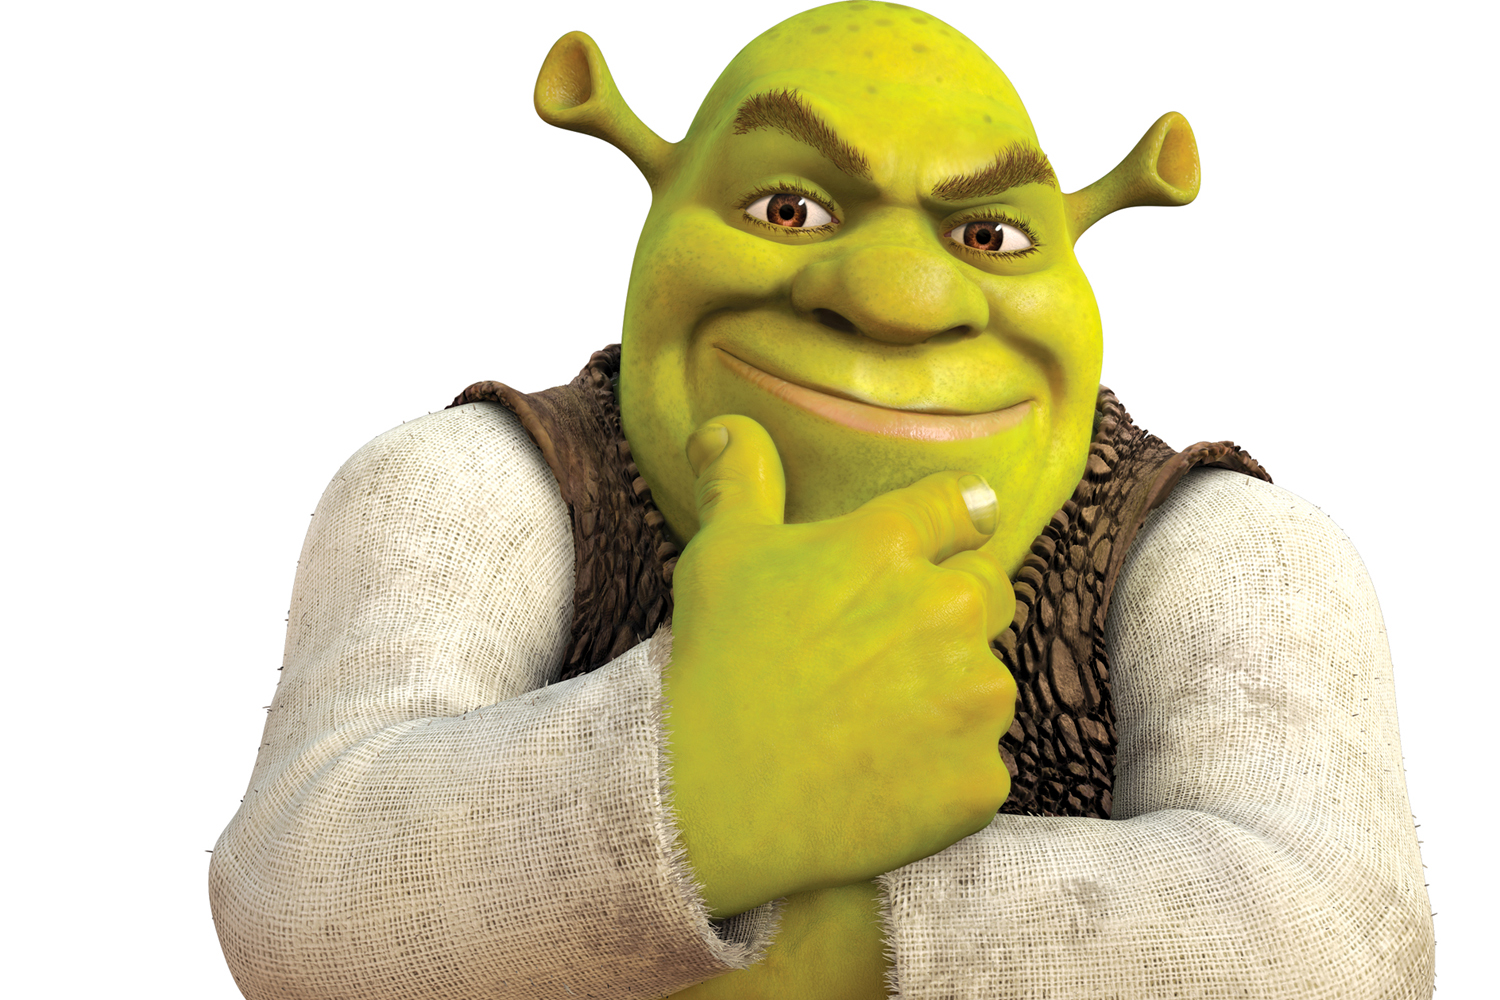 1500x1000 > Shrek Wallpapers